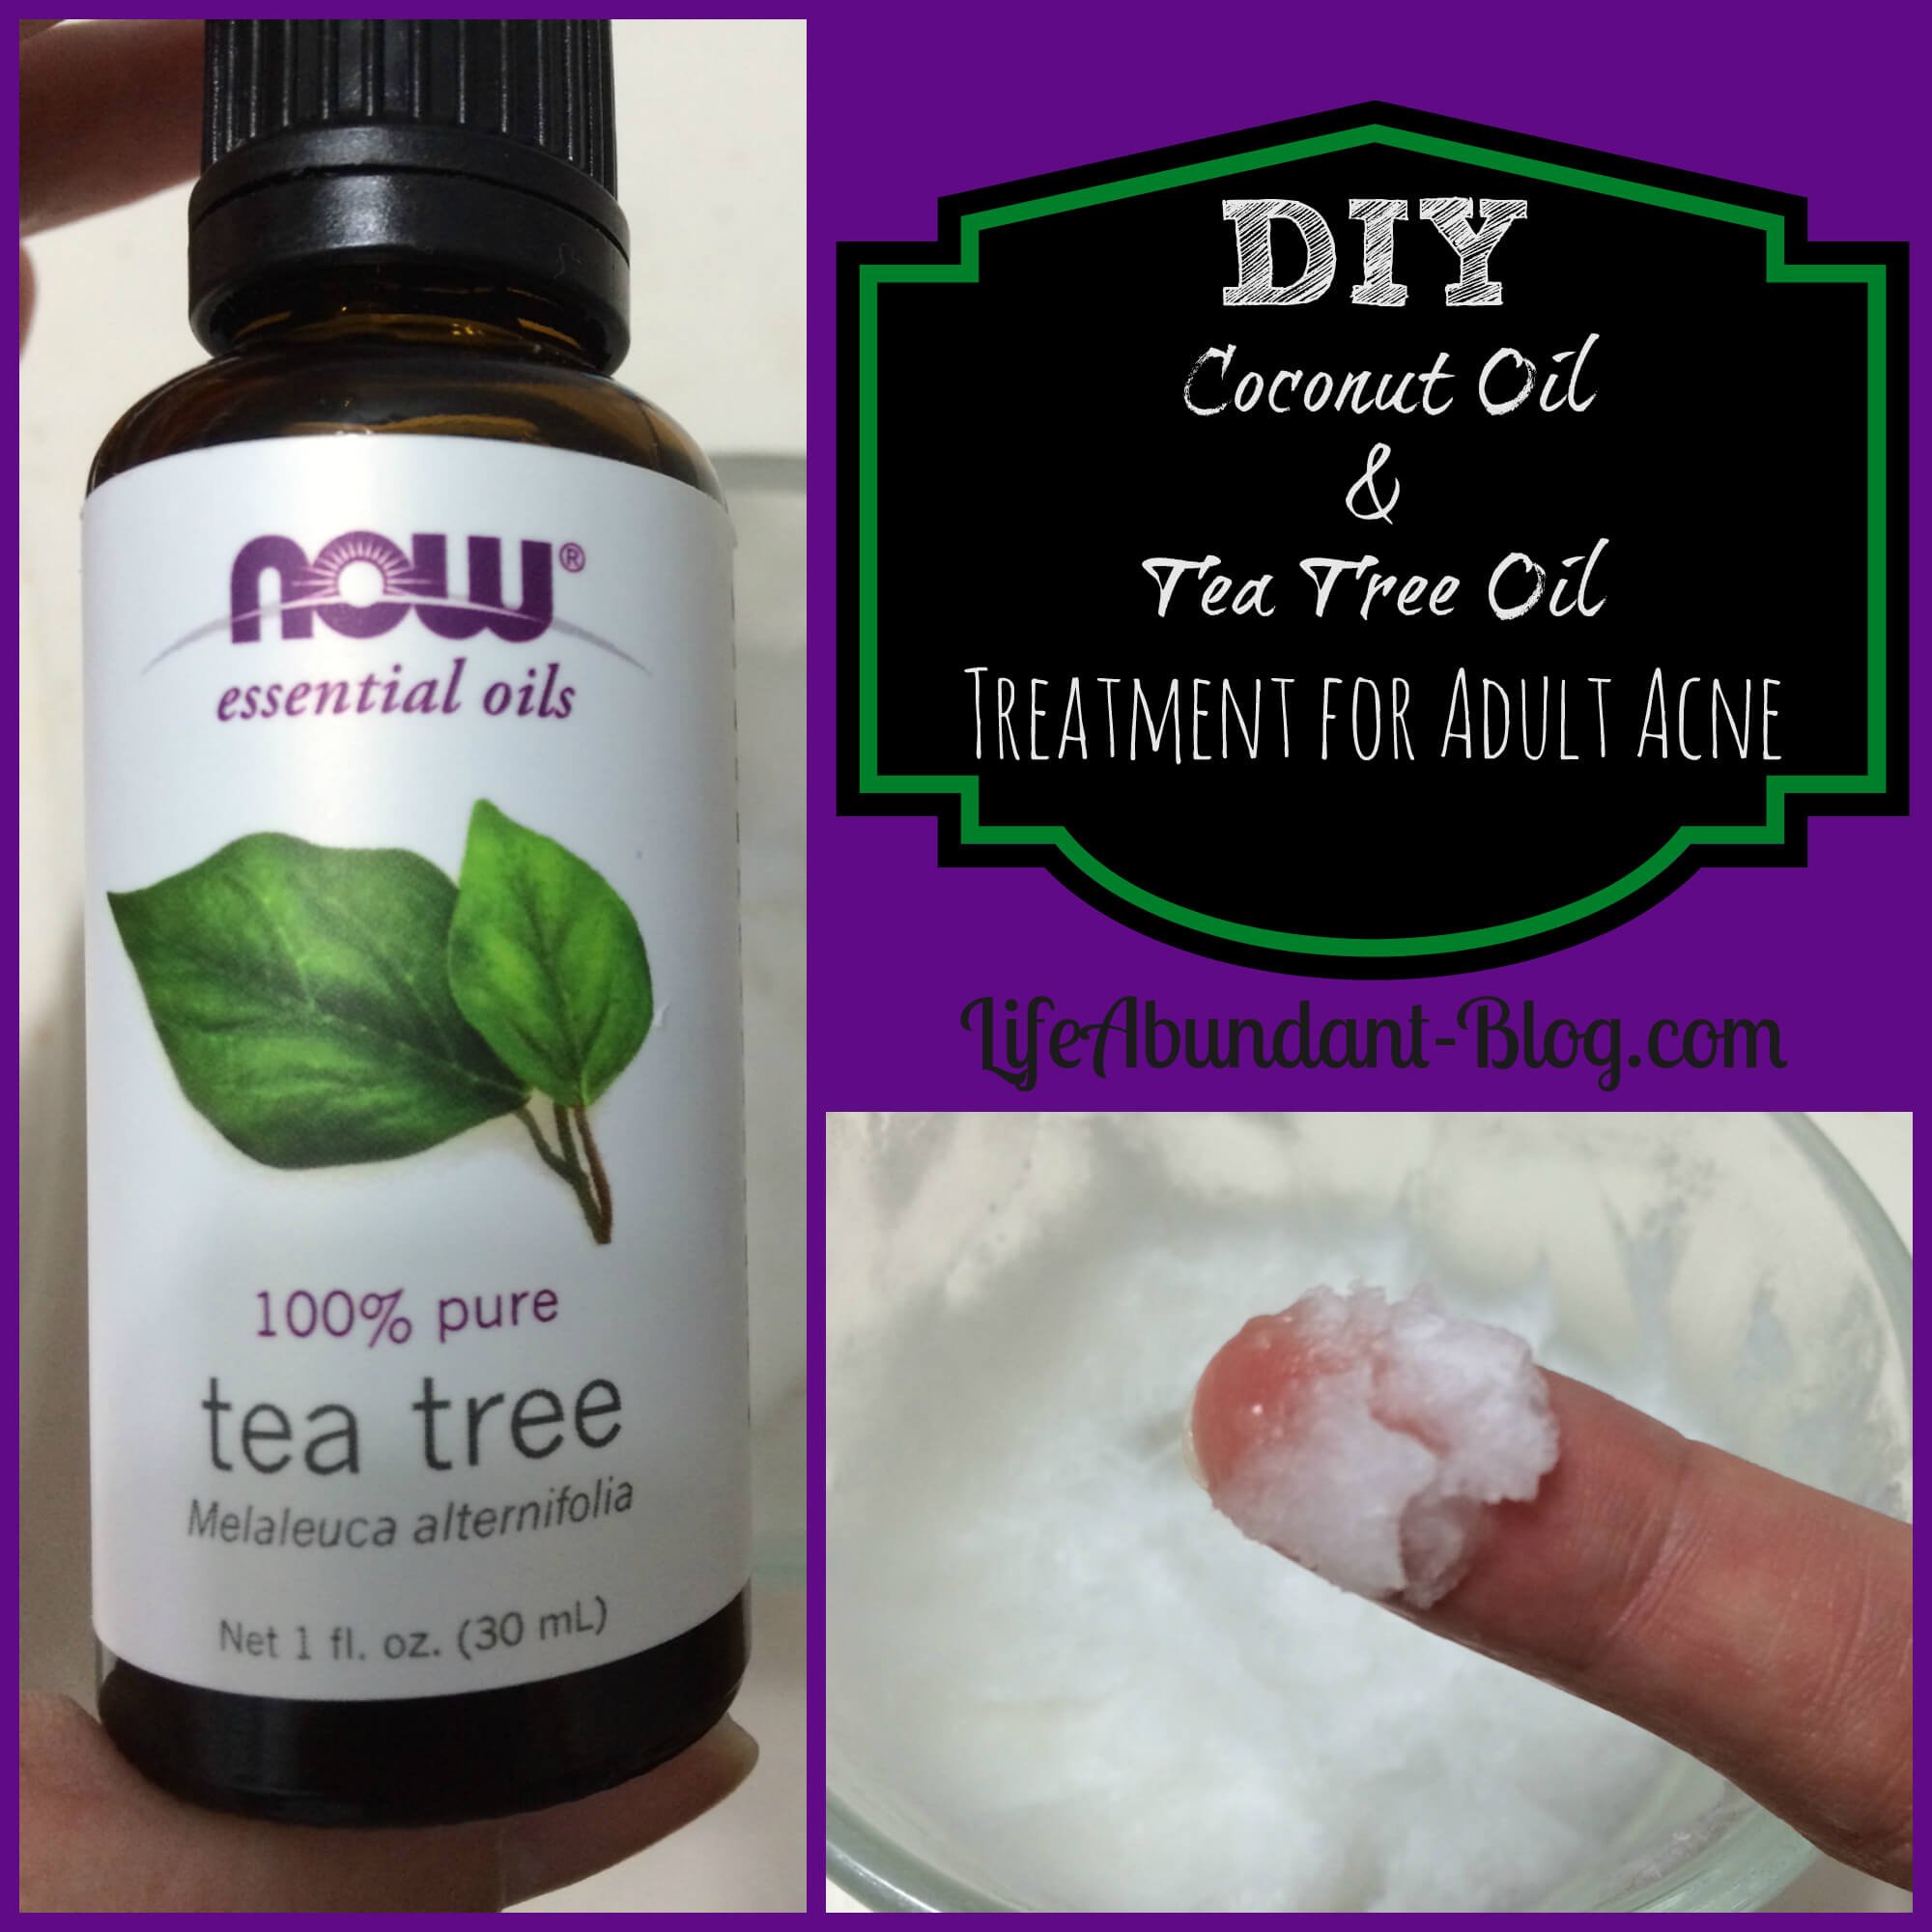 diy coconut oil + tea tree oil treatment for adult acne